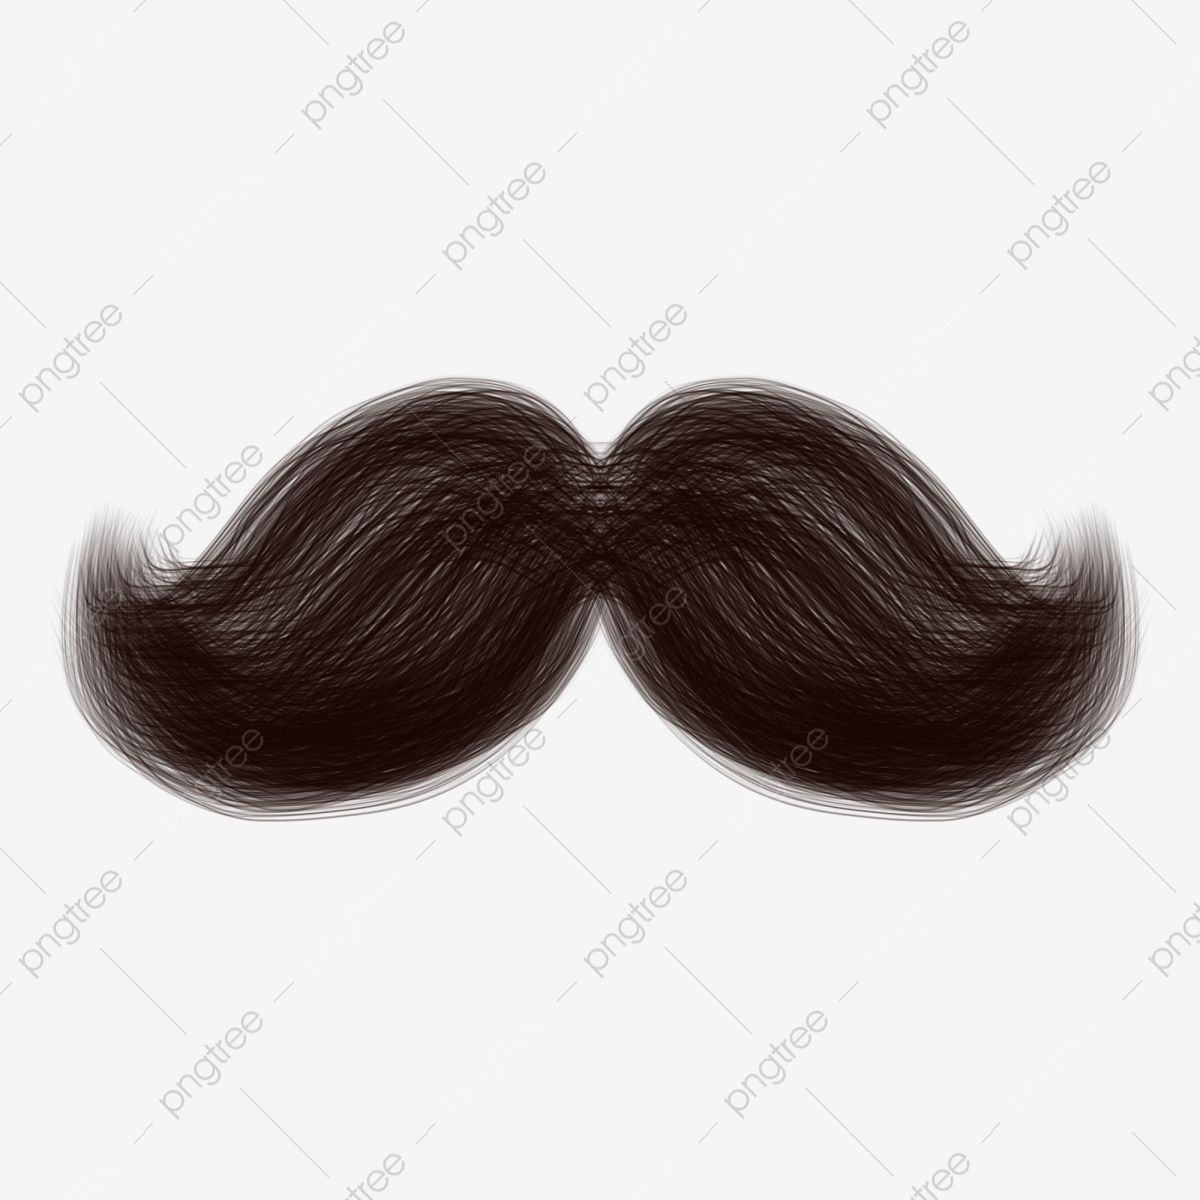 jpg freeuse Beard clipart texture. Facial decorative brush black.